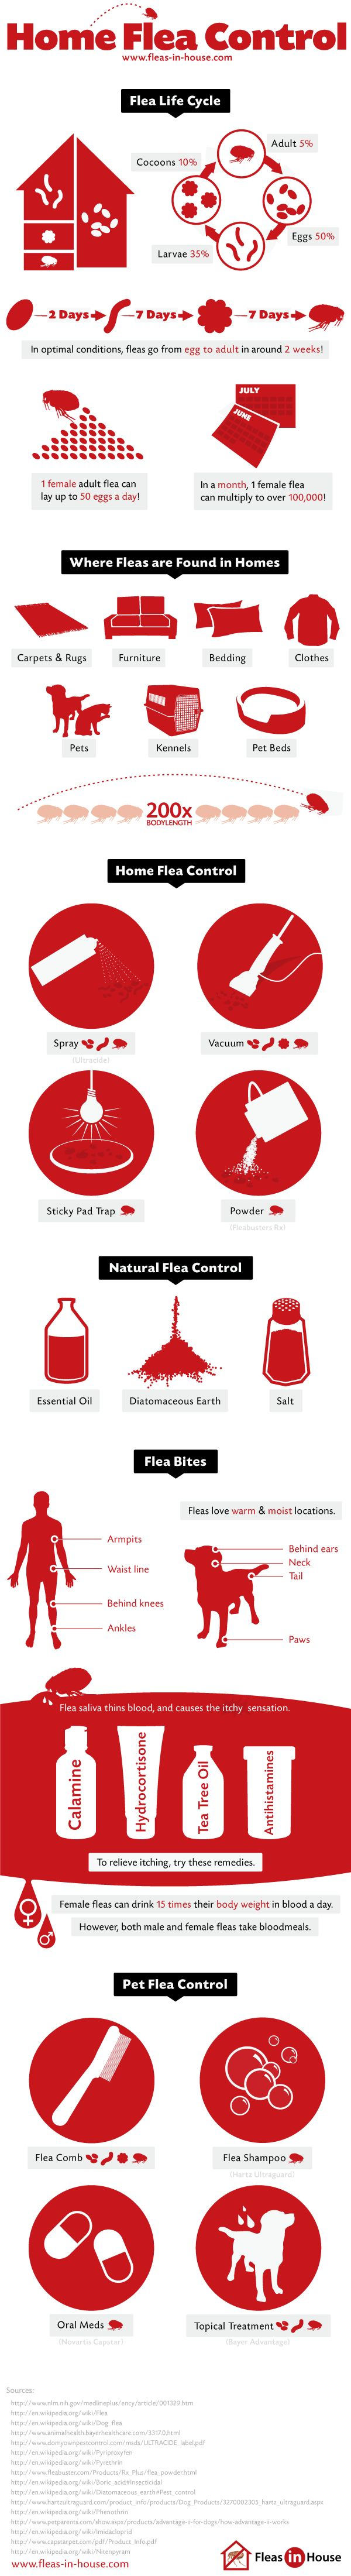 Home Flea Control [INFOGRAPHIC]